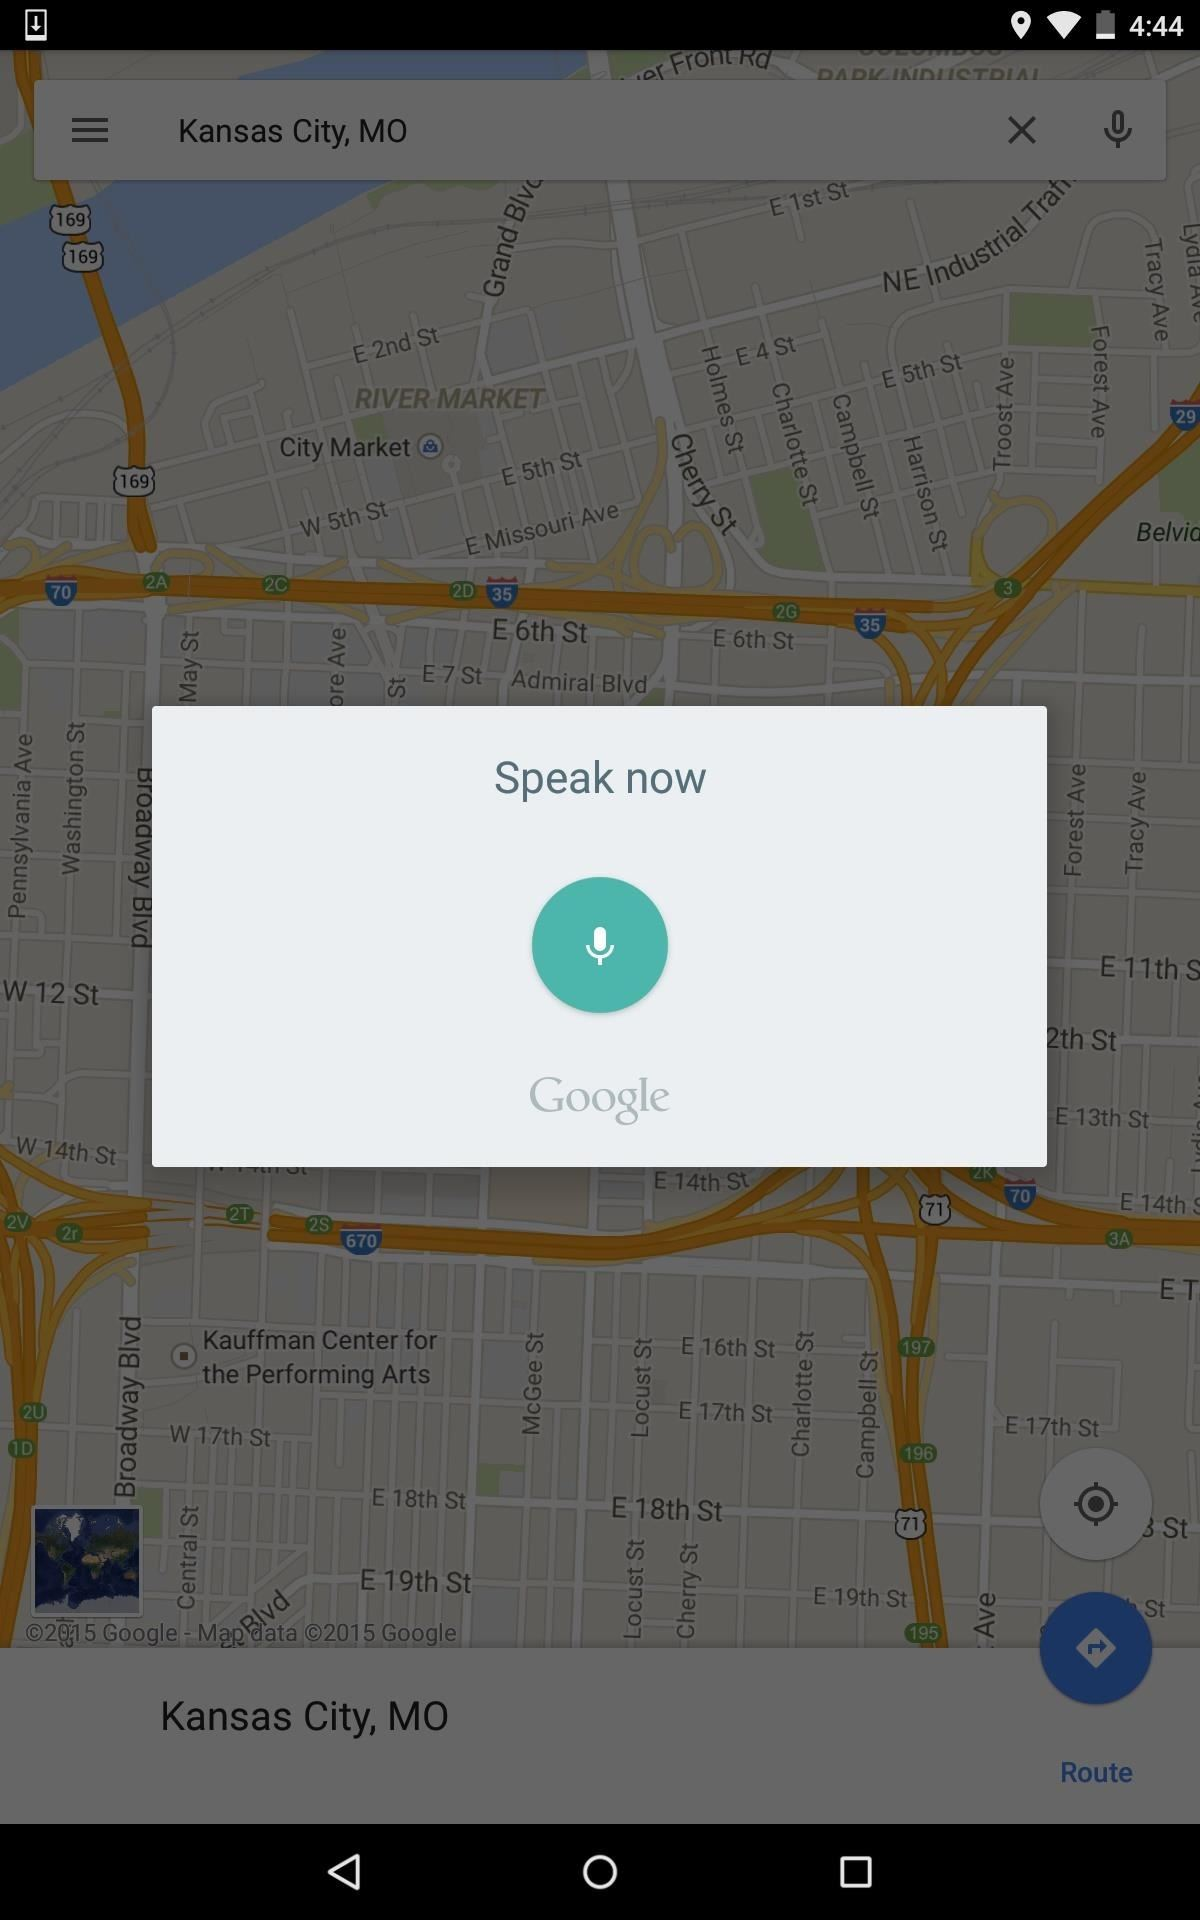 How to Save Locations in Google Maps for Offline Use